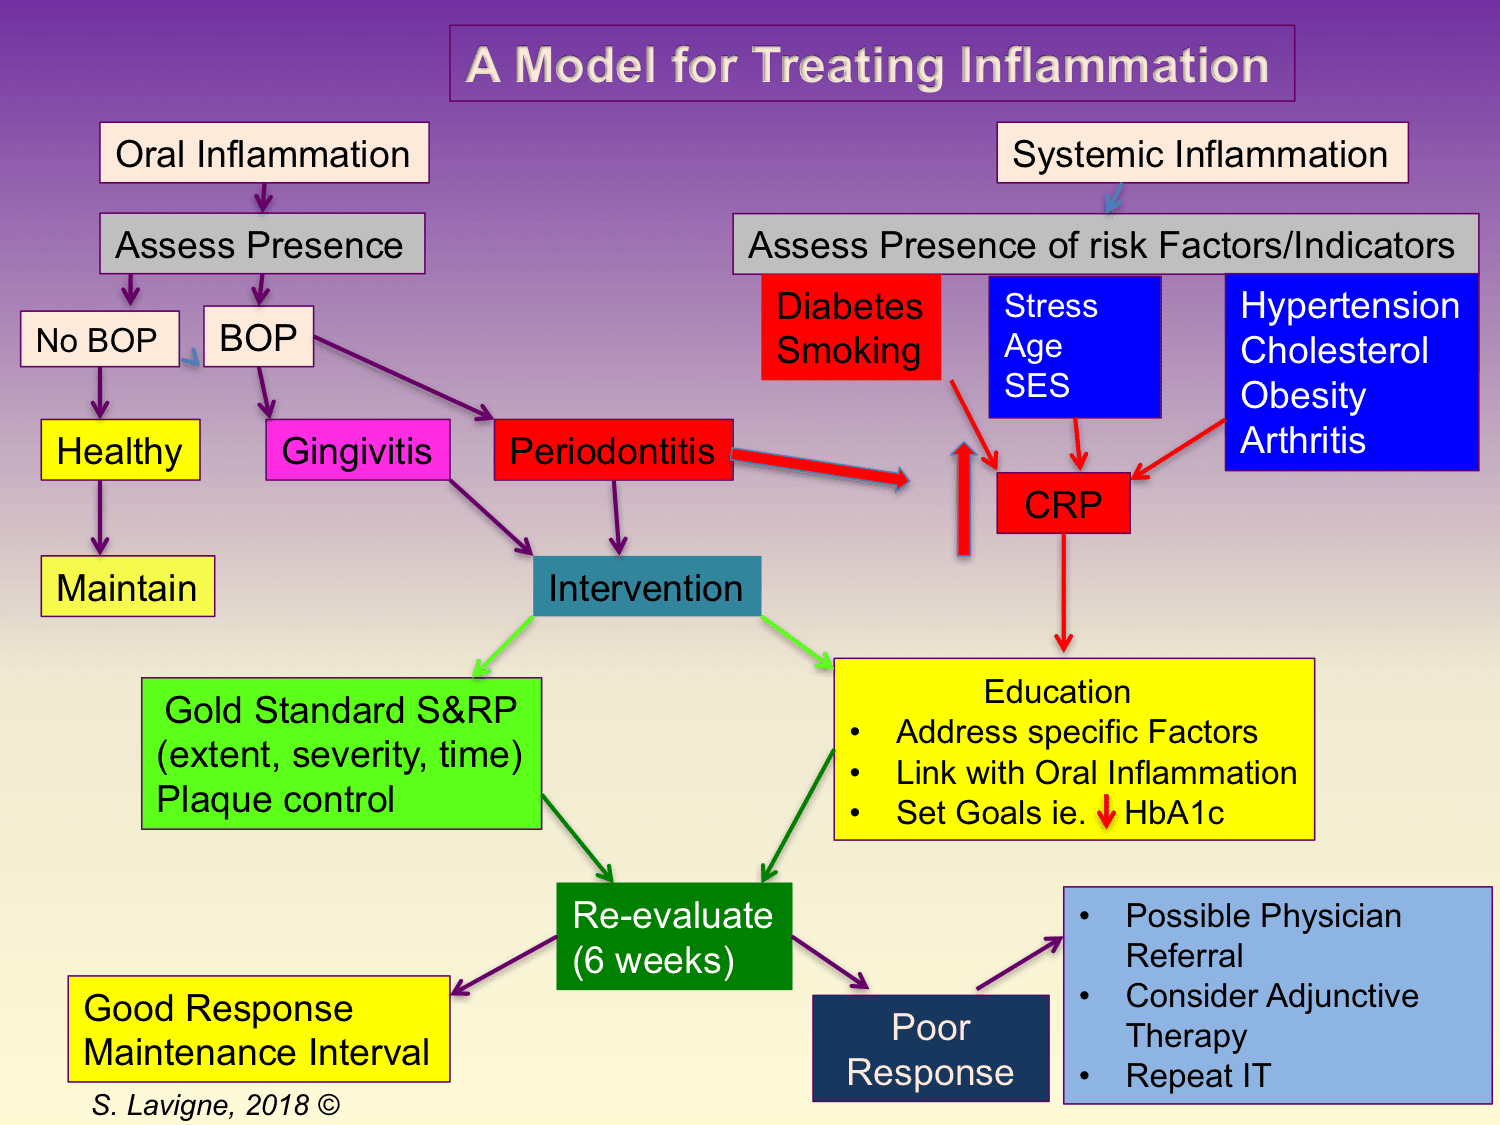 Image: Model for treating inflammation.